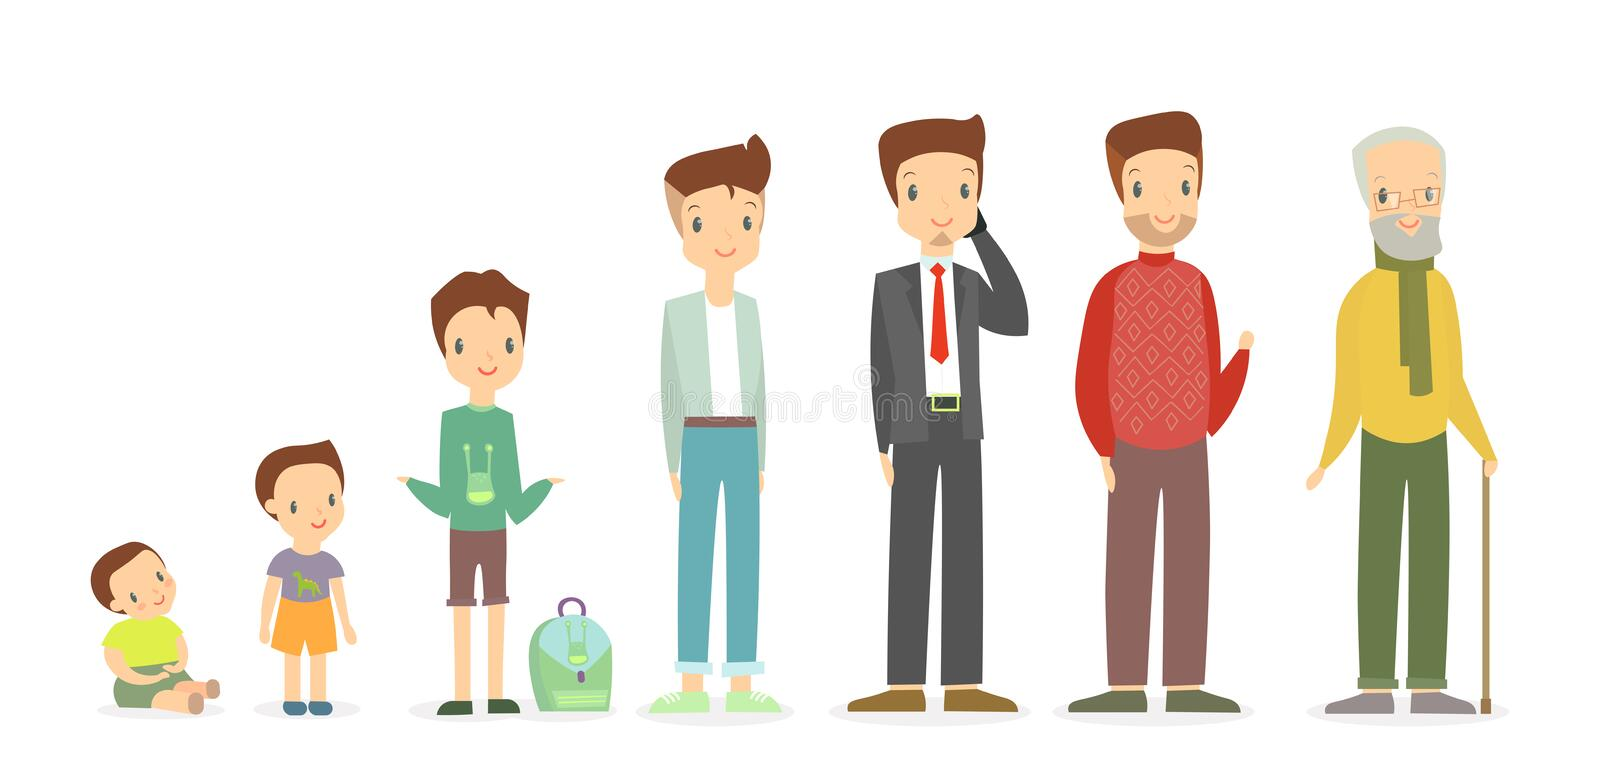 Vector illustration of a man in different ages - as a small baby boy, a child, a pupil, a teenager, an adult and an stock illustration